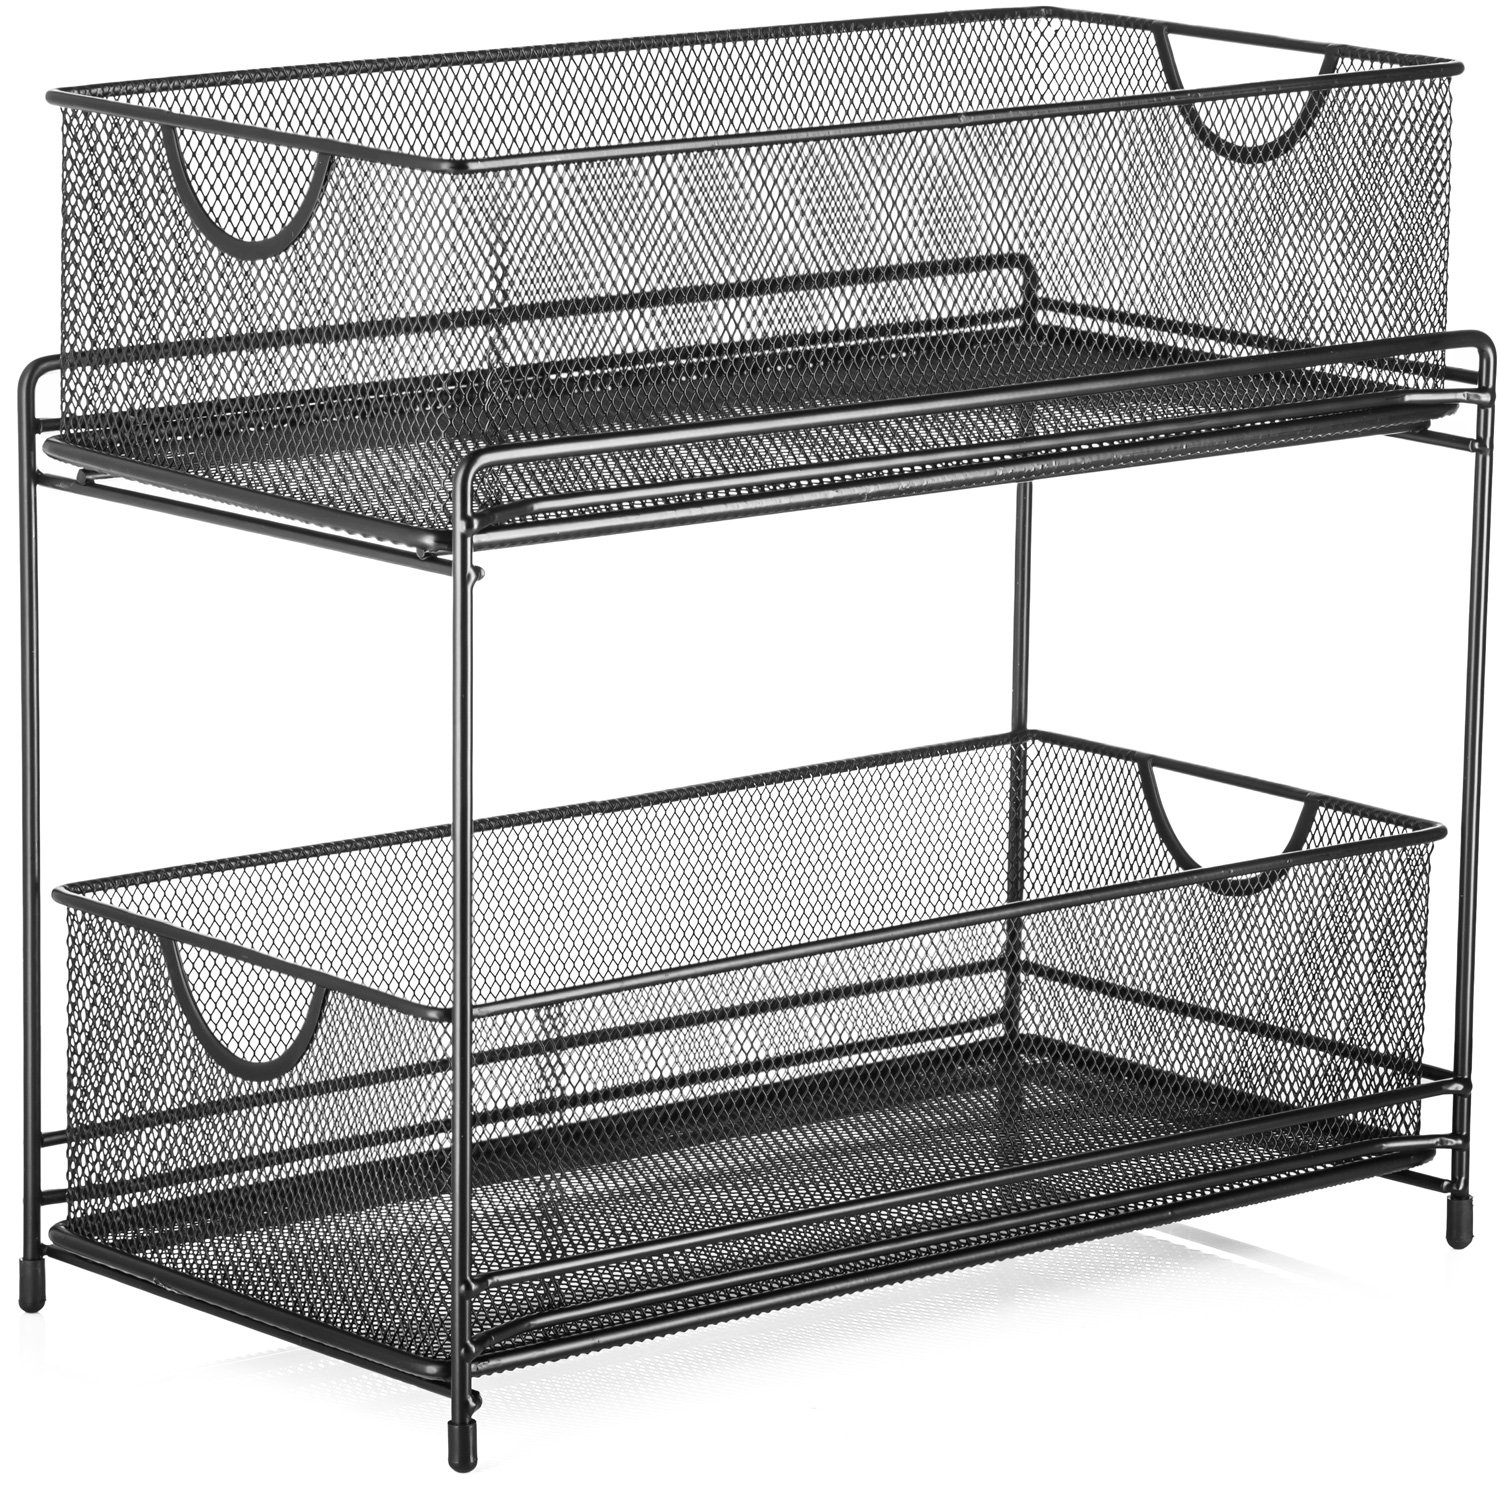 Halter Two Tier Mesh Storage Drawers Baskets for Laundry Kitchen Office Bathroom and More - 14